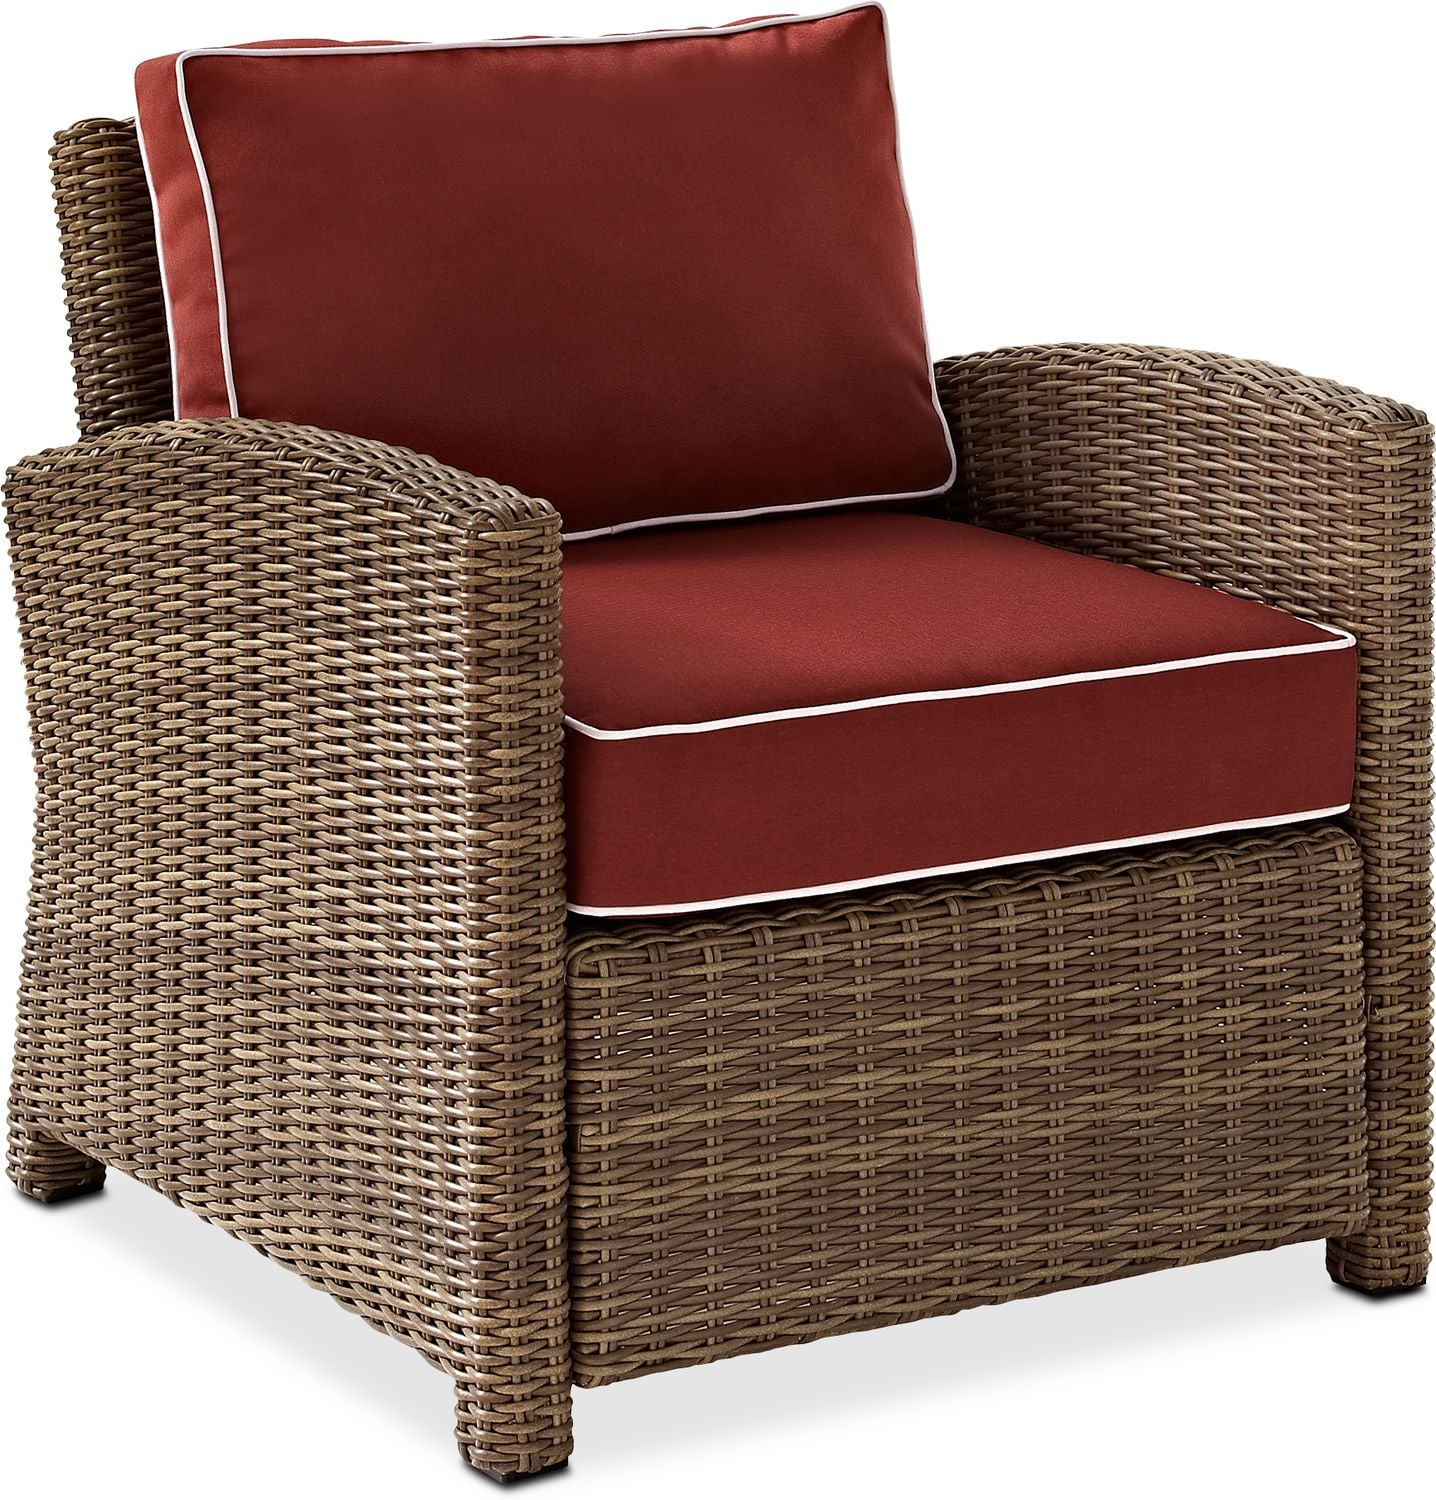 Destin Outdoor Sofa 2 Chairs Cocktail Table and End Table Set